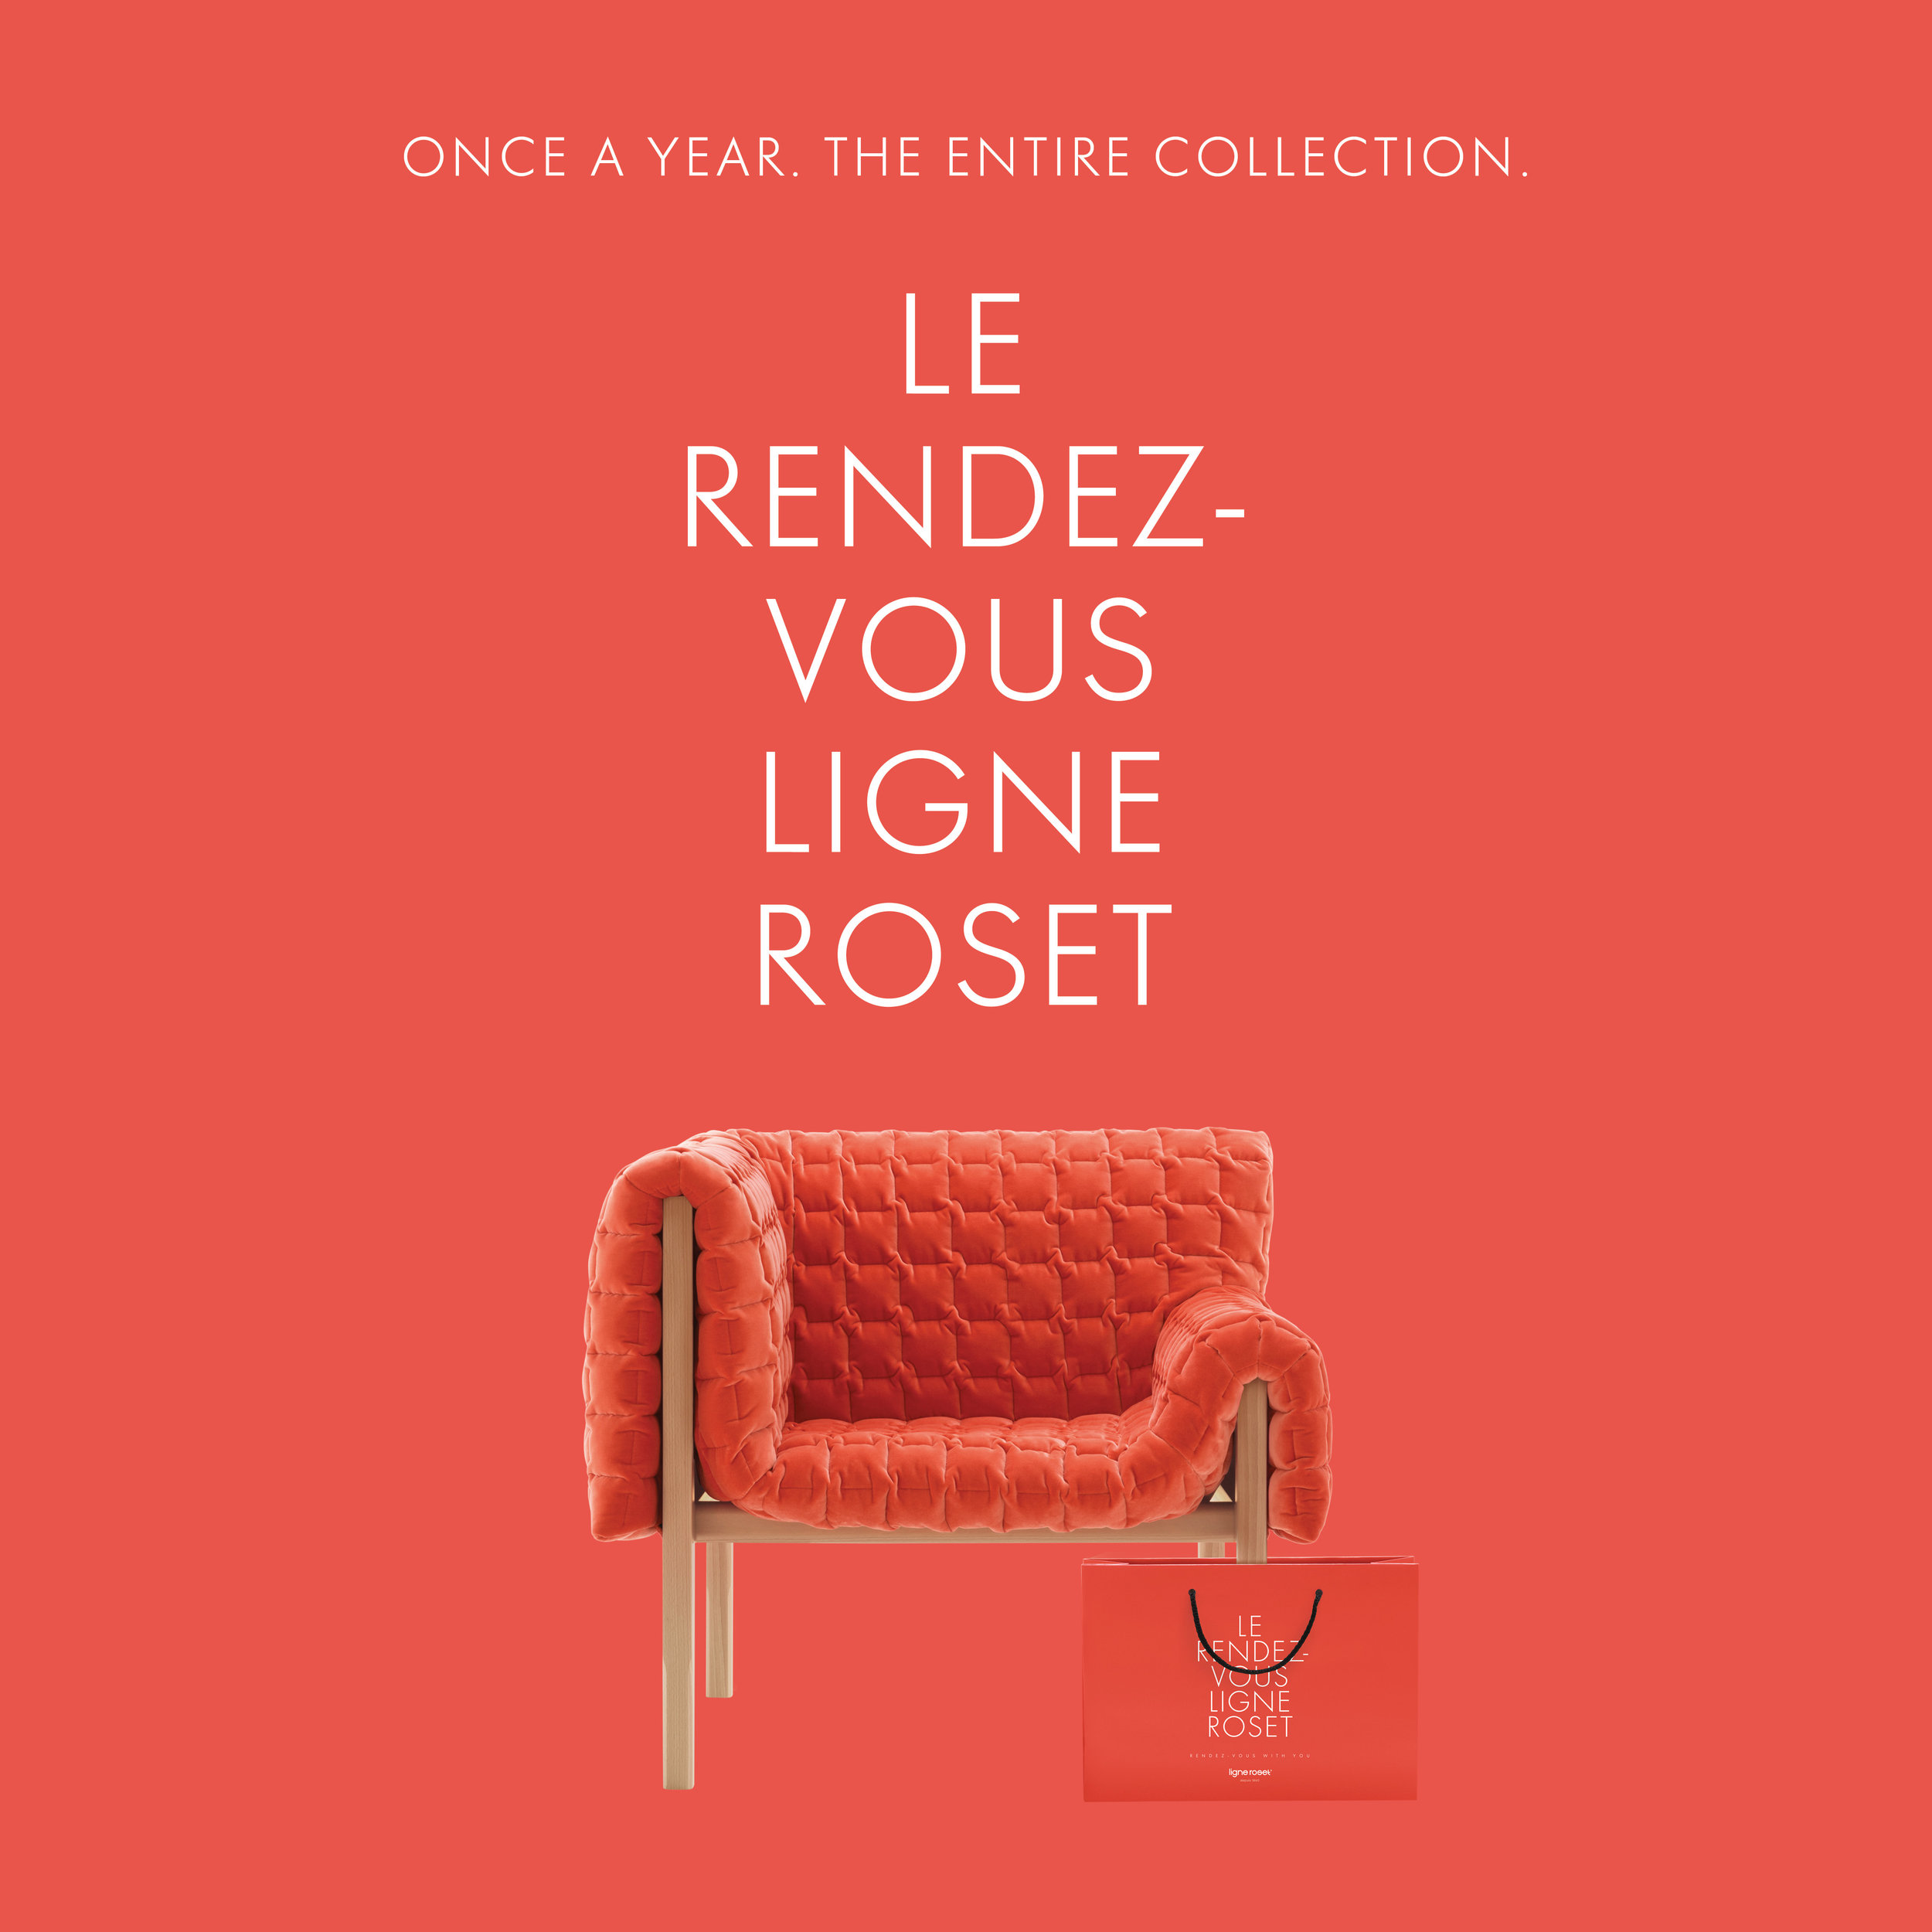 20% OFF LIGNE ROSET'S ENTIRE COLLECTION | SEPTEMBER 13TH - 24TH | IN STORE & NEW ORDERS EXCLUSIONS APPLY